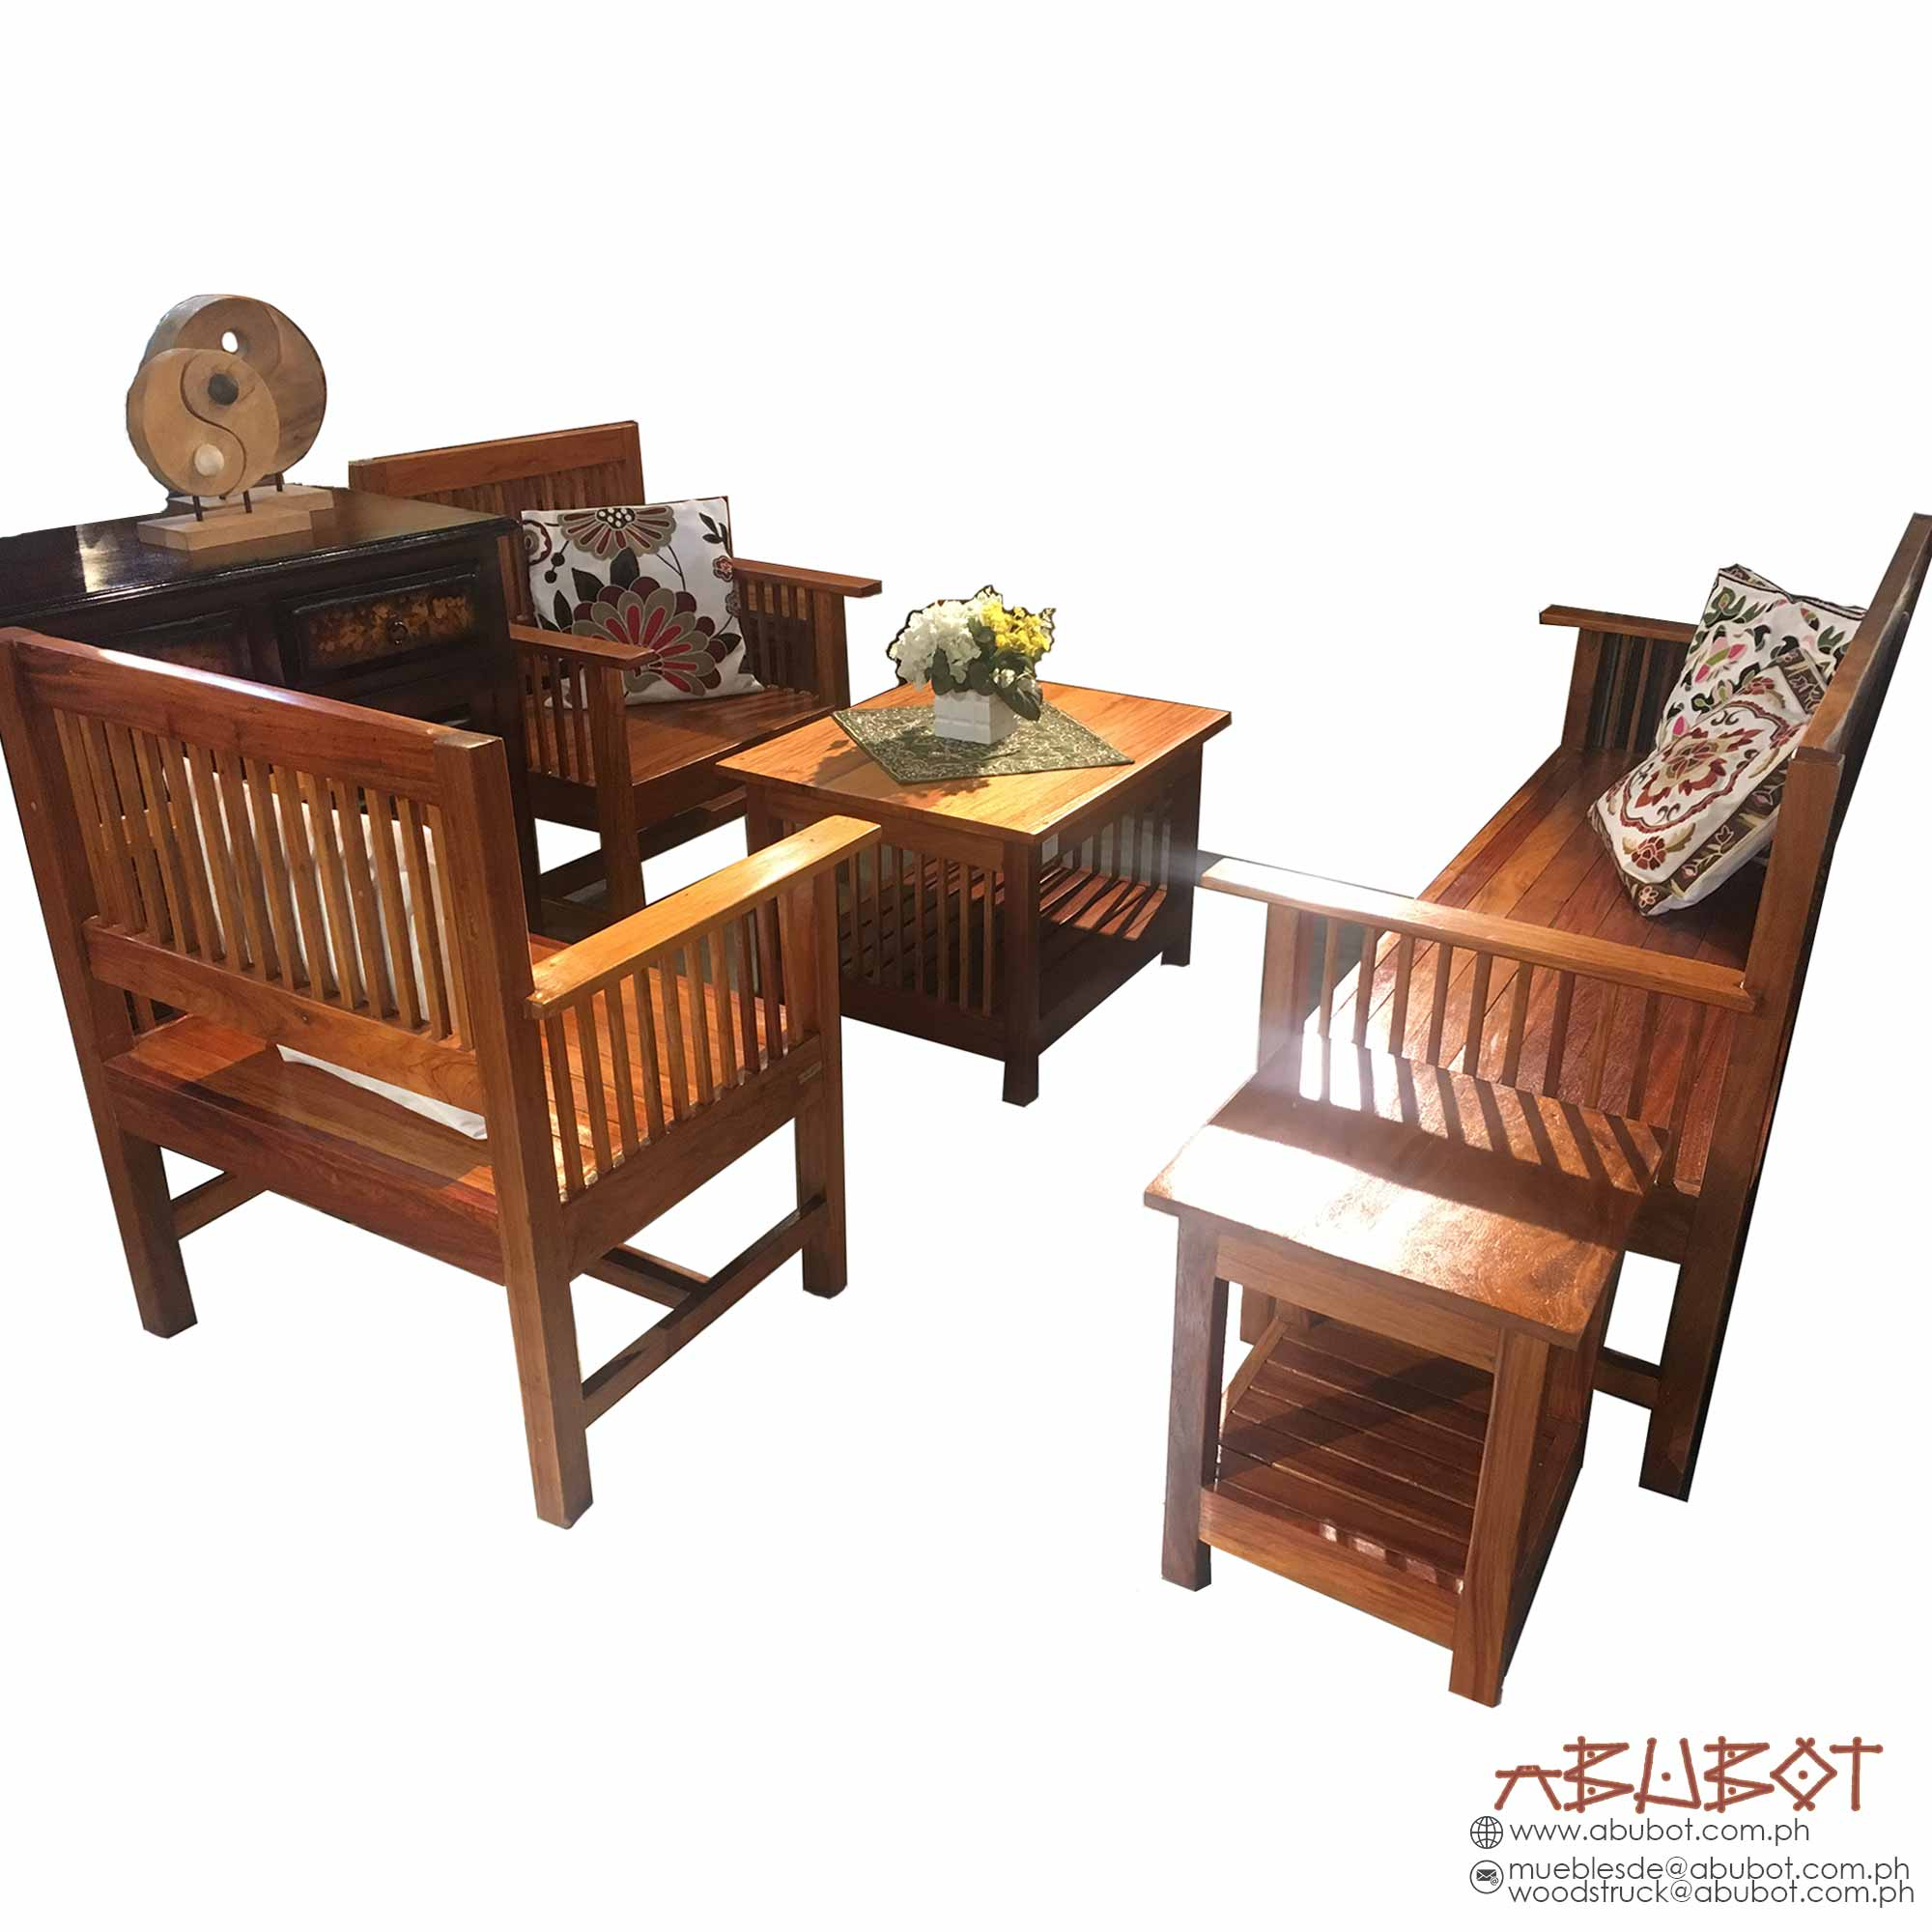 Sala Set Narra Woodstruck Home Furnishings Inc